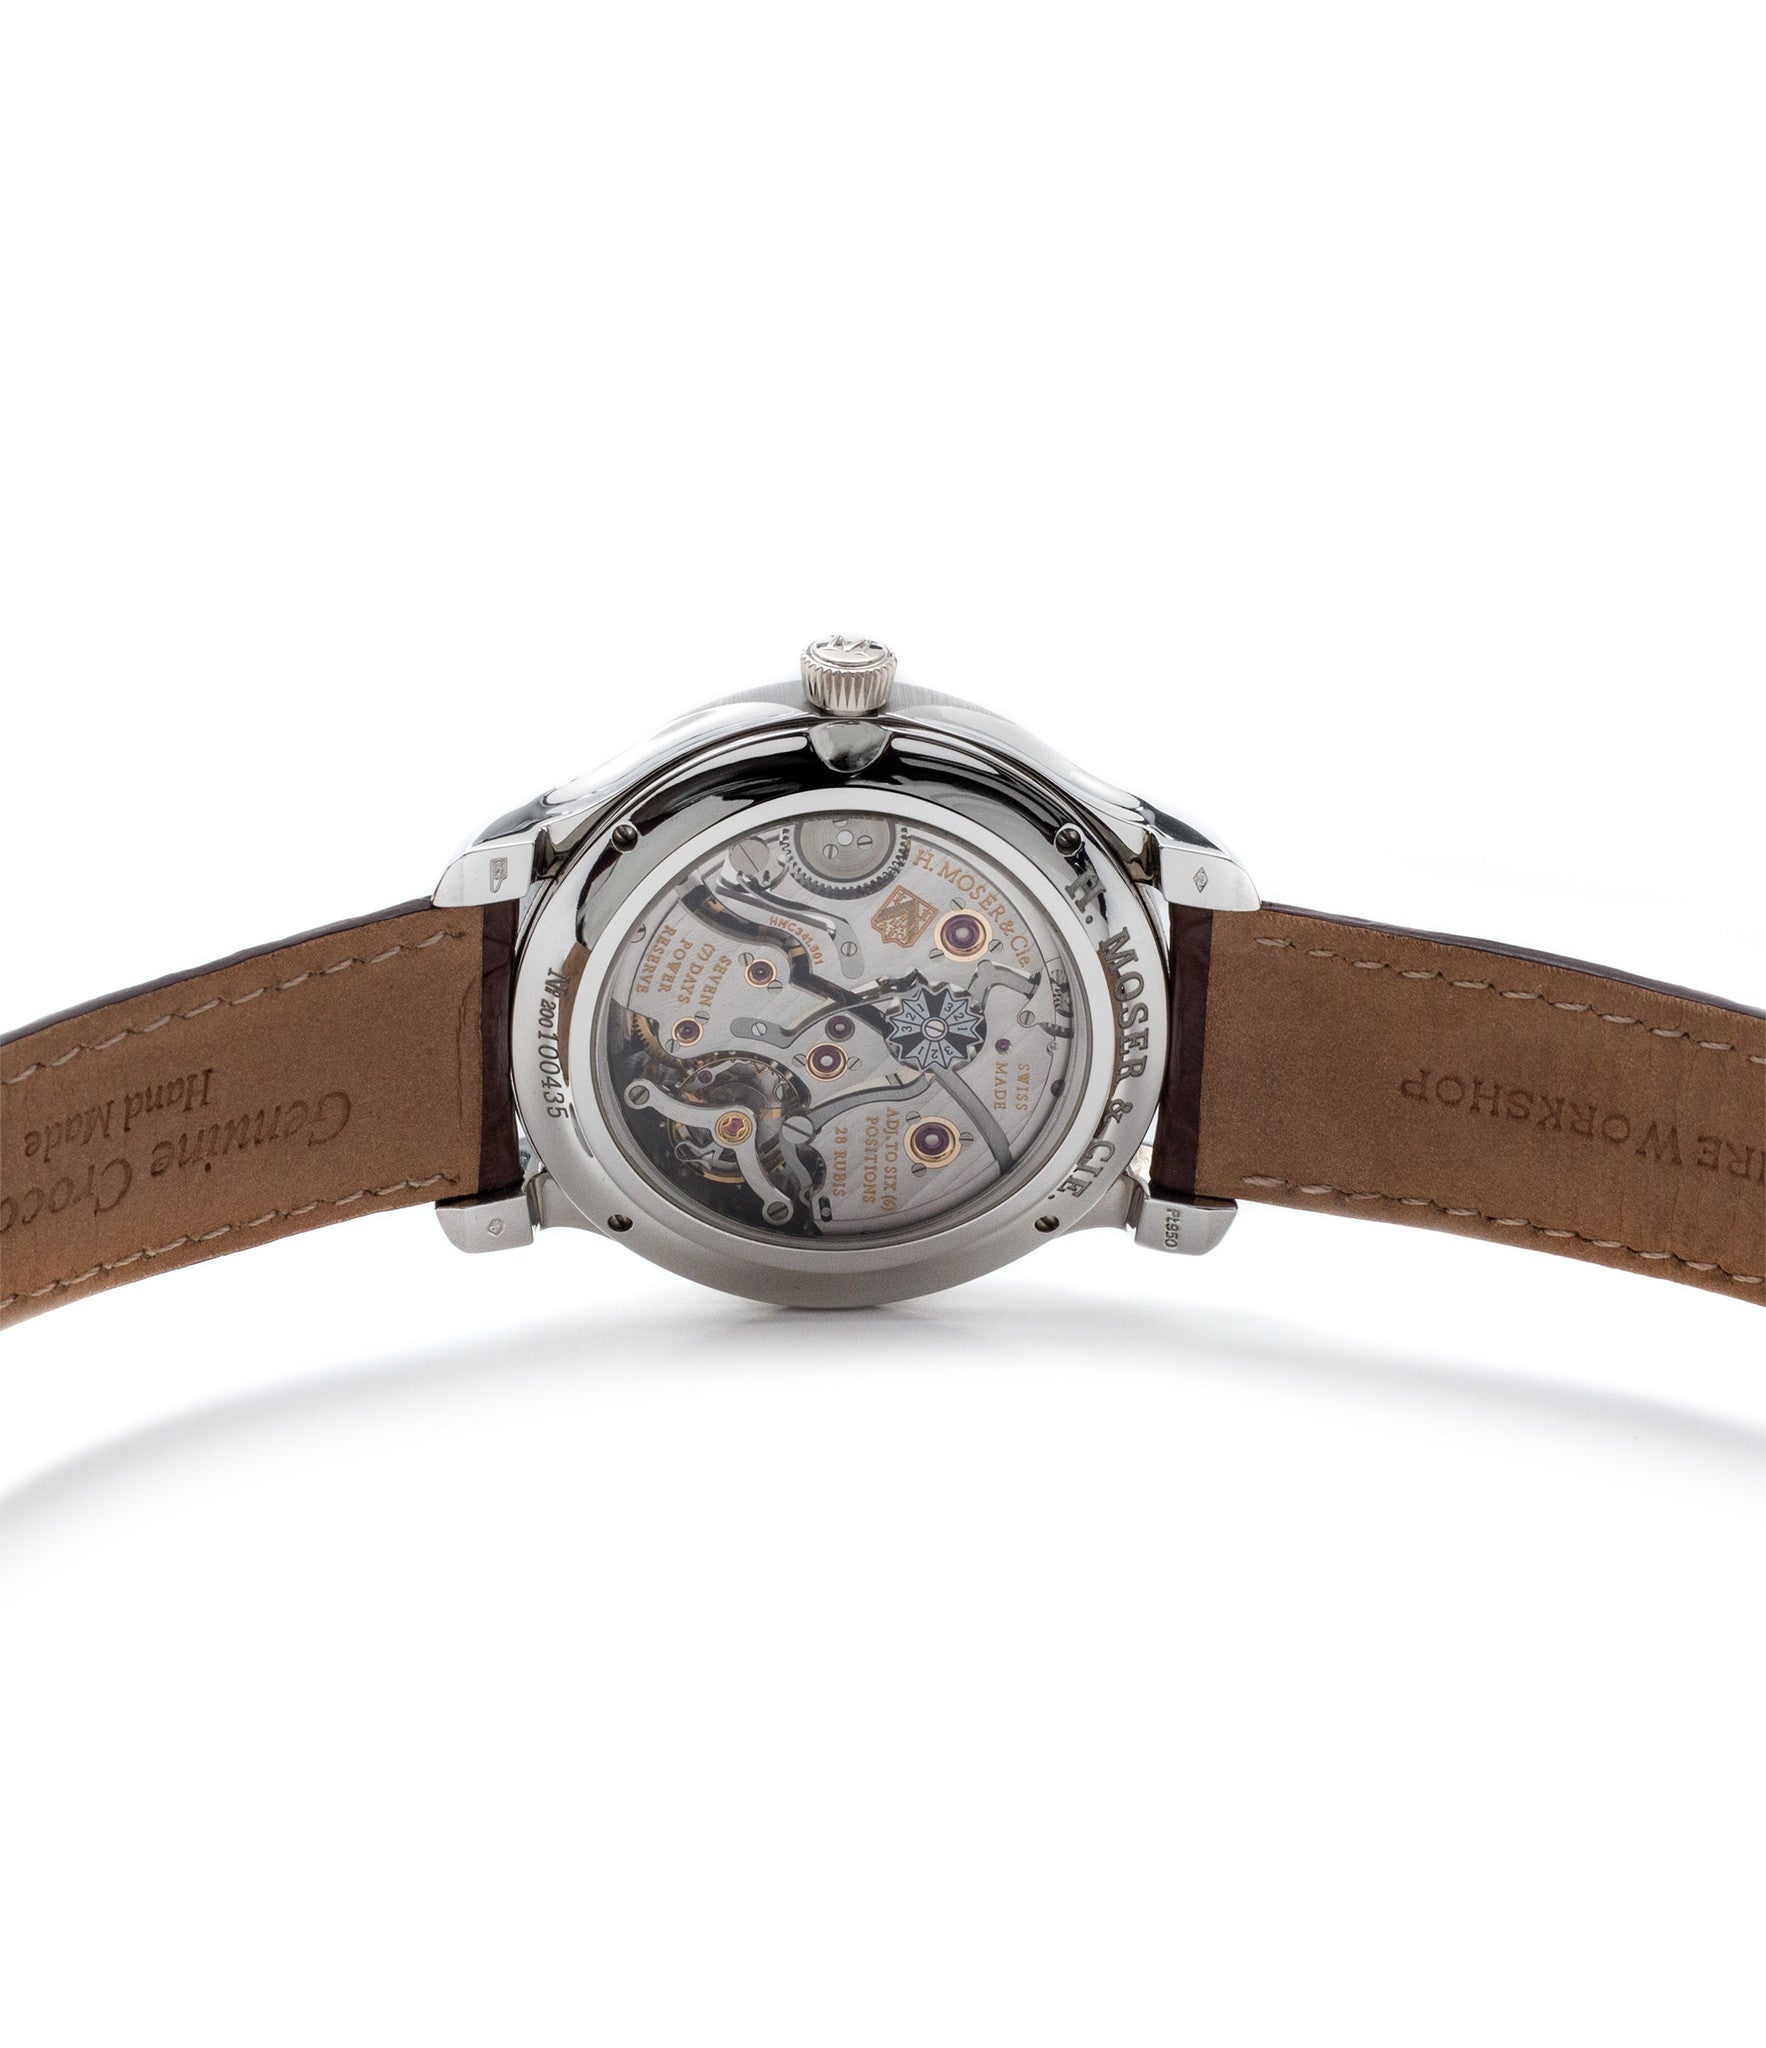 hand-finished movement H. Moser & Cie. Perpetual Calendar 1341 platinum preowned watch at A Collected Man